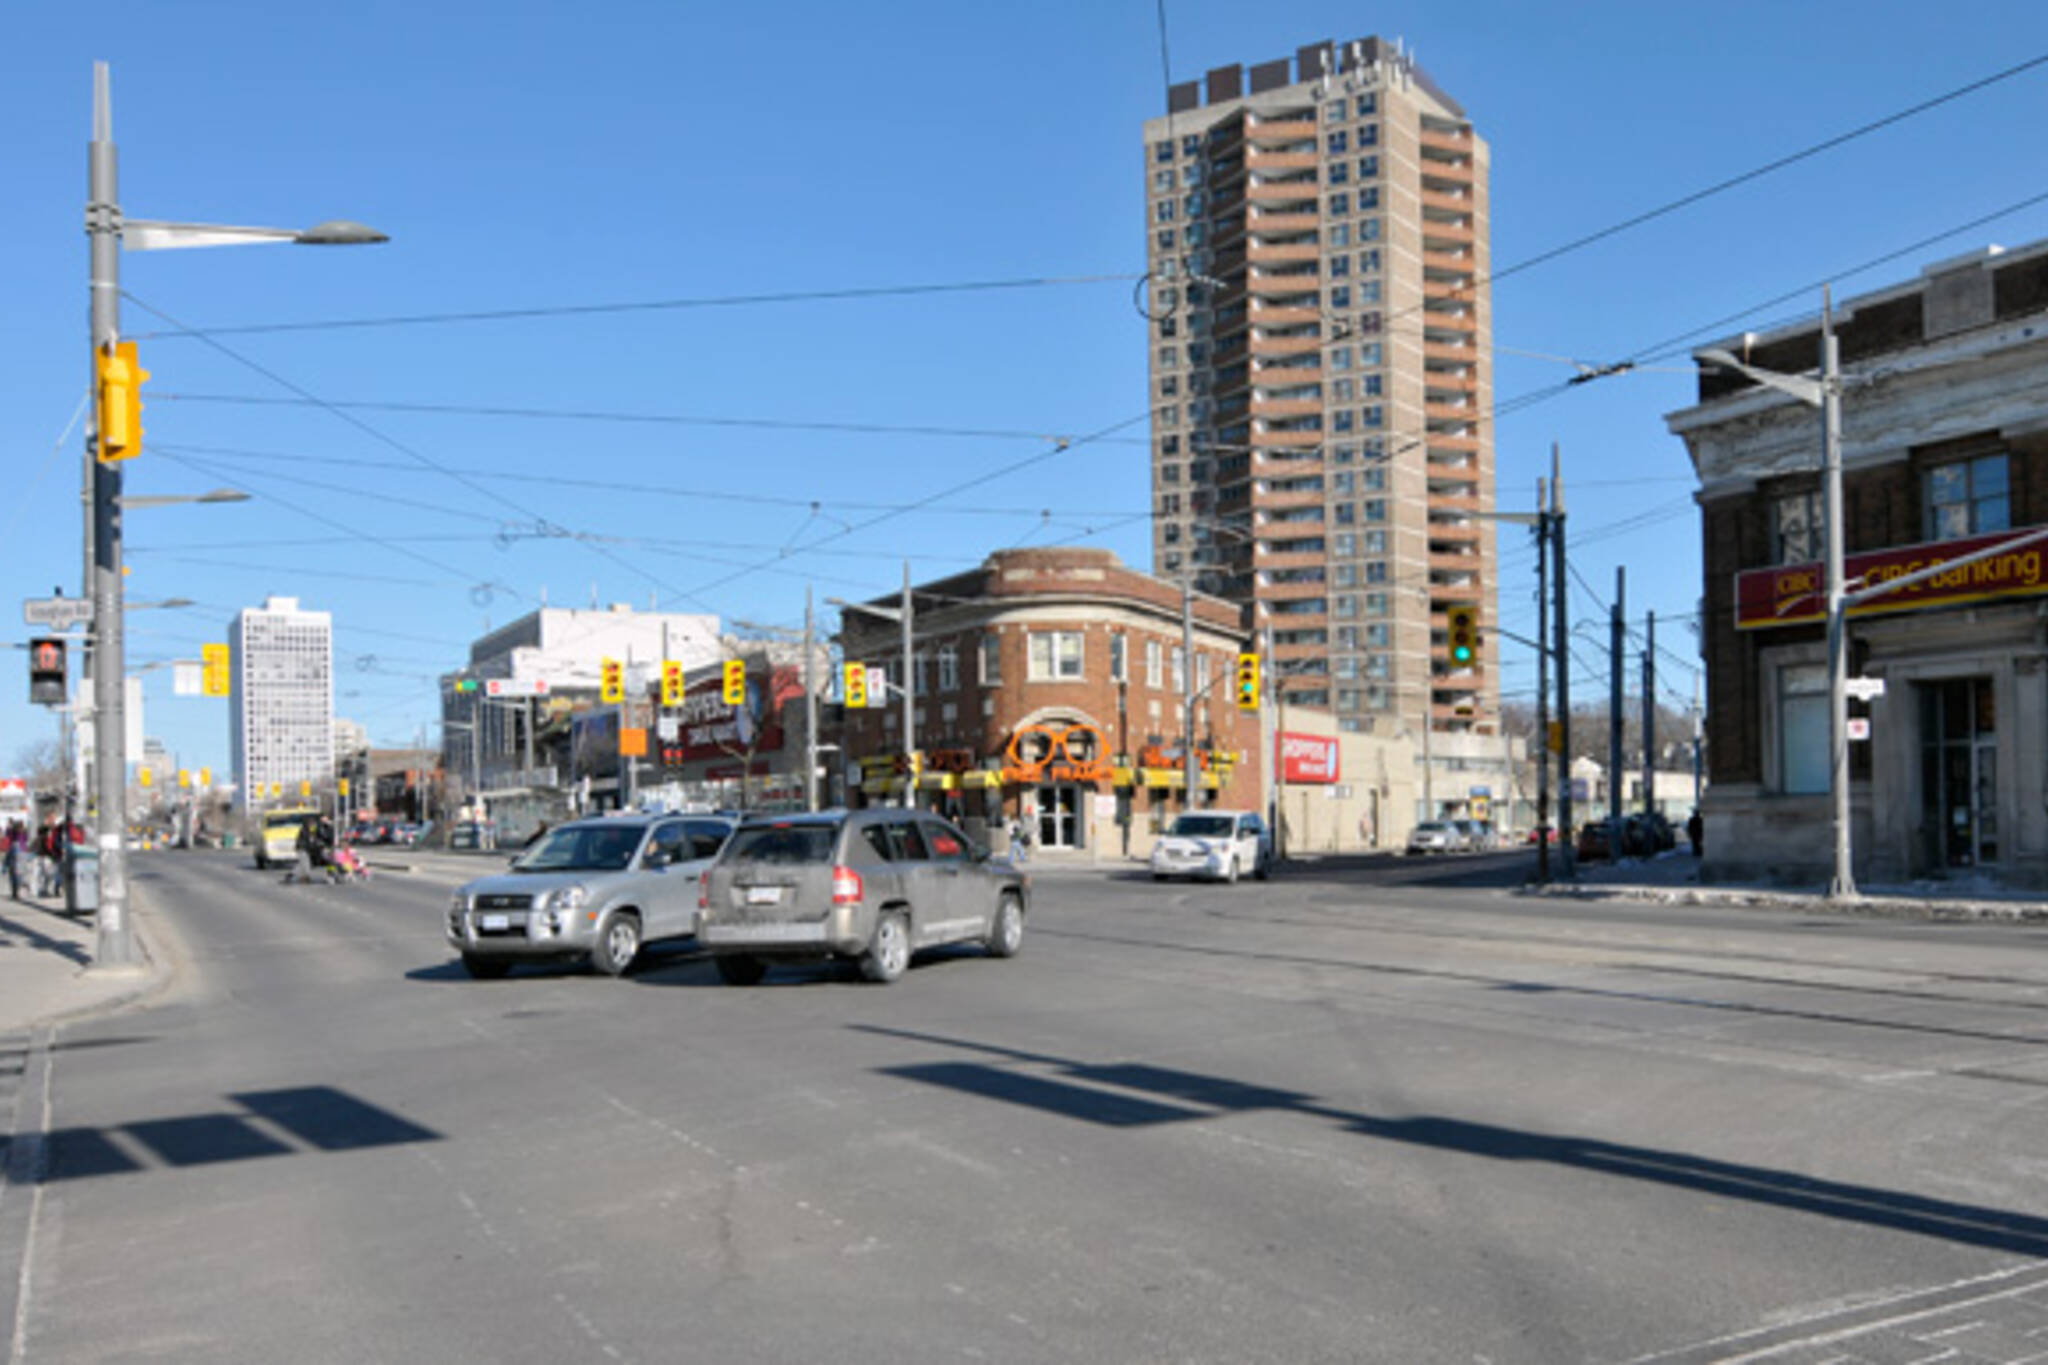 Worst Intersections in Toronto